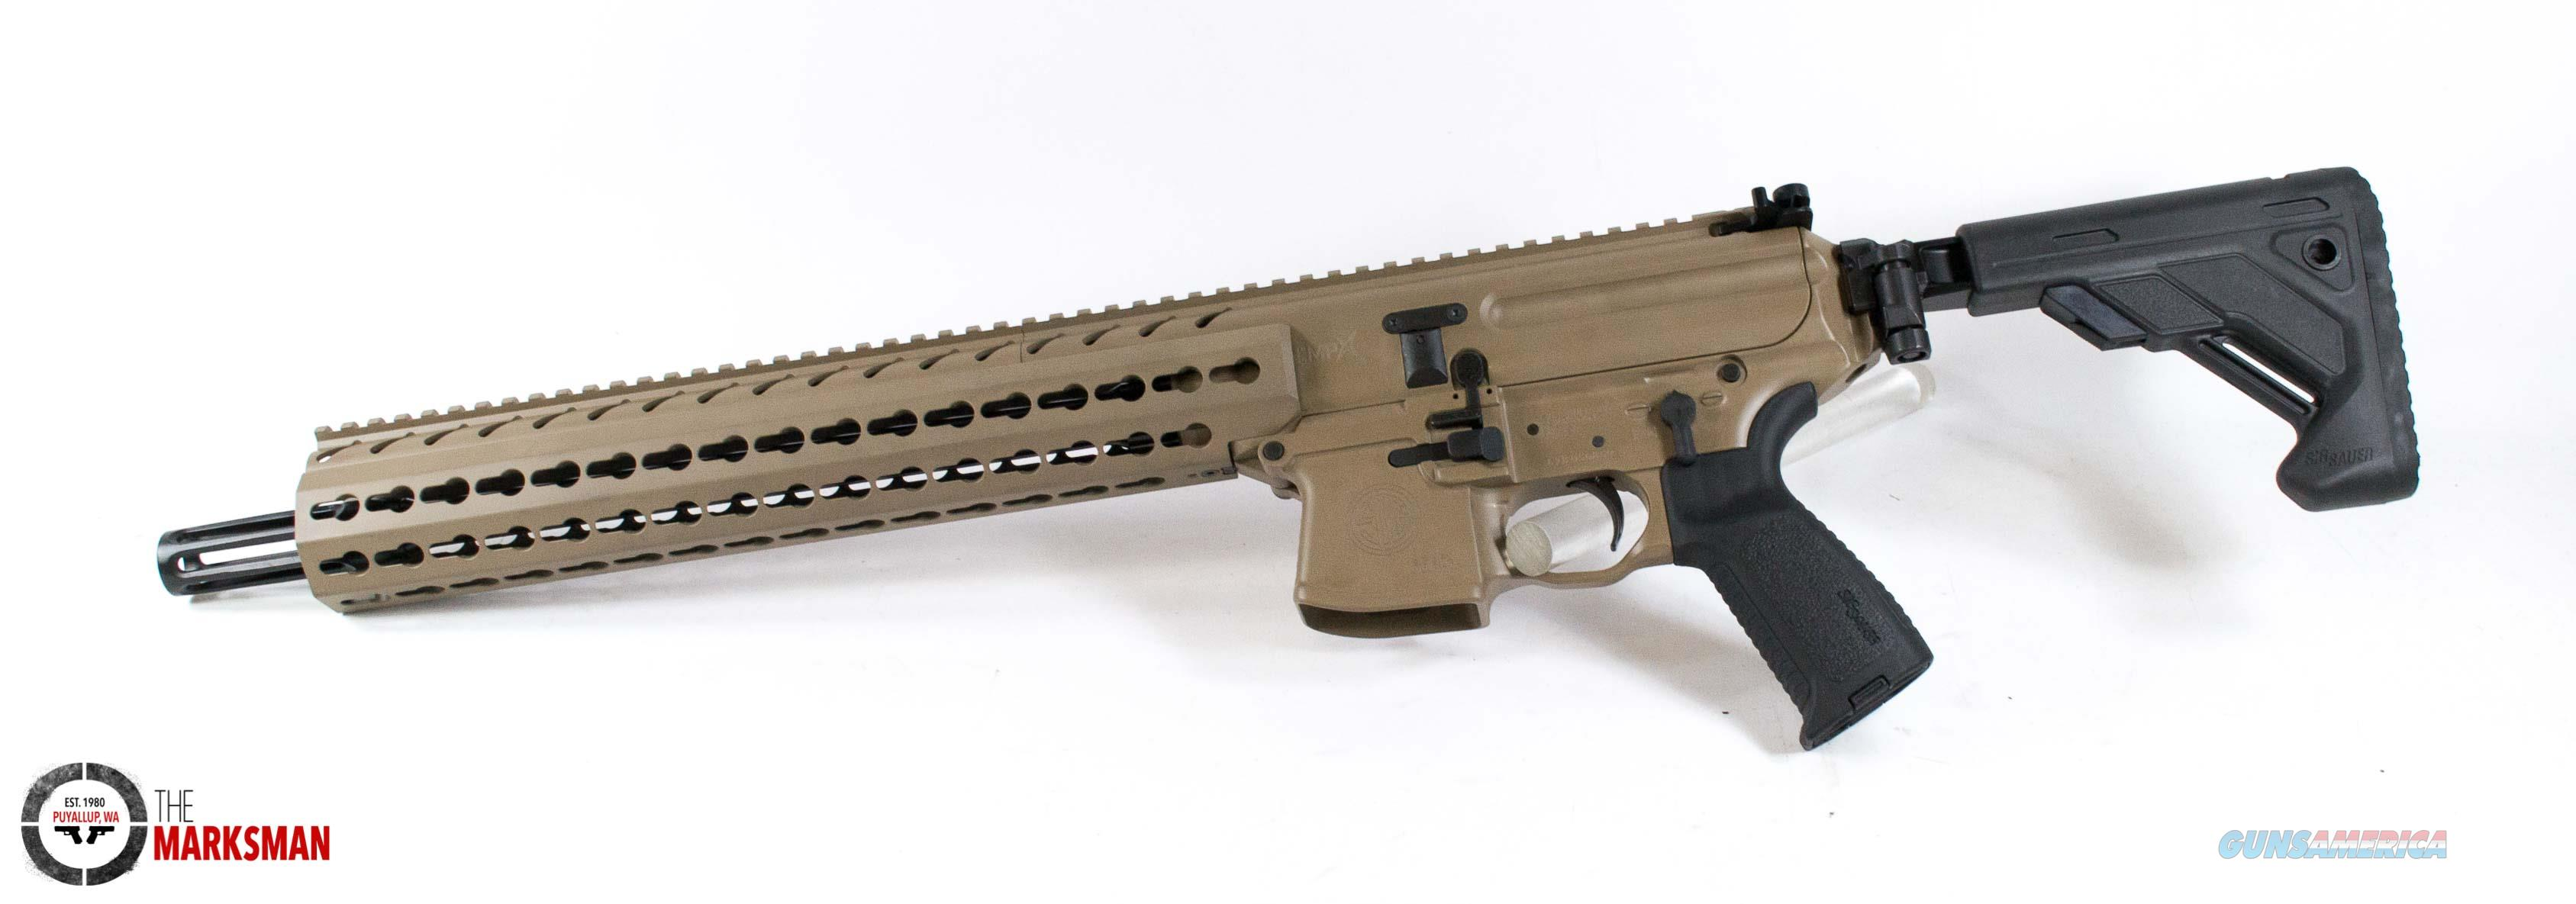 Sig Sauer MPX Carbine, 9mm, FDE NEW Folding, Collapsible Stock   Guns > Rifles > Sig - Sauer/Sigarms Rifles